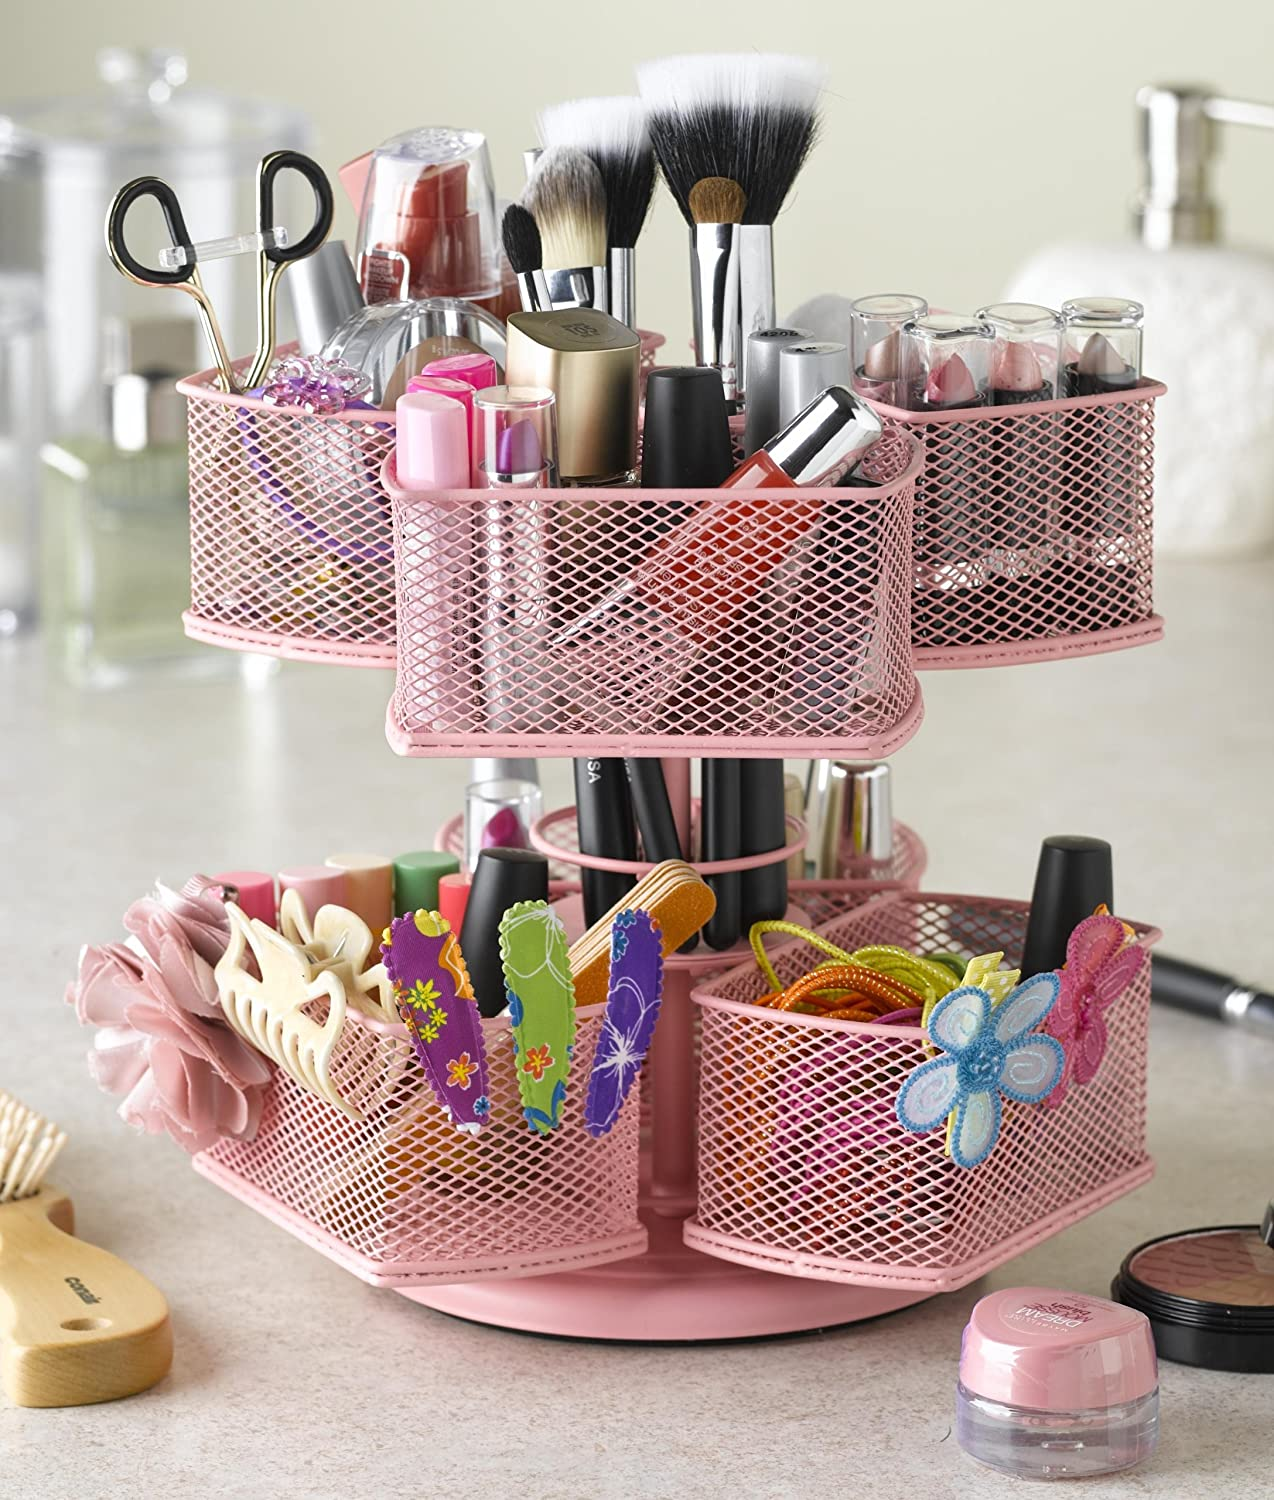 & Amazon.com: Nifty Cosmetic Organizing Carousel Pink: Beauty